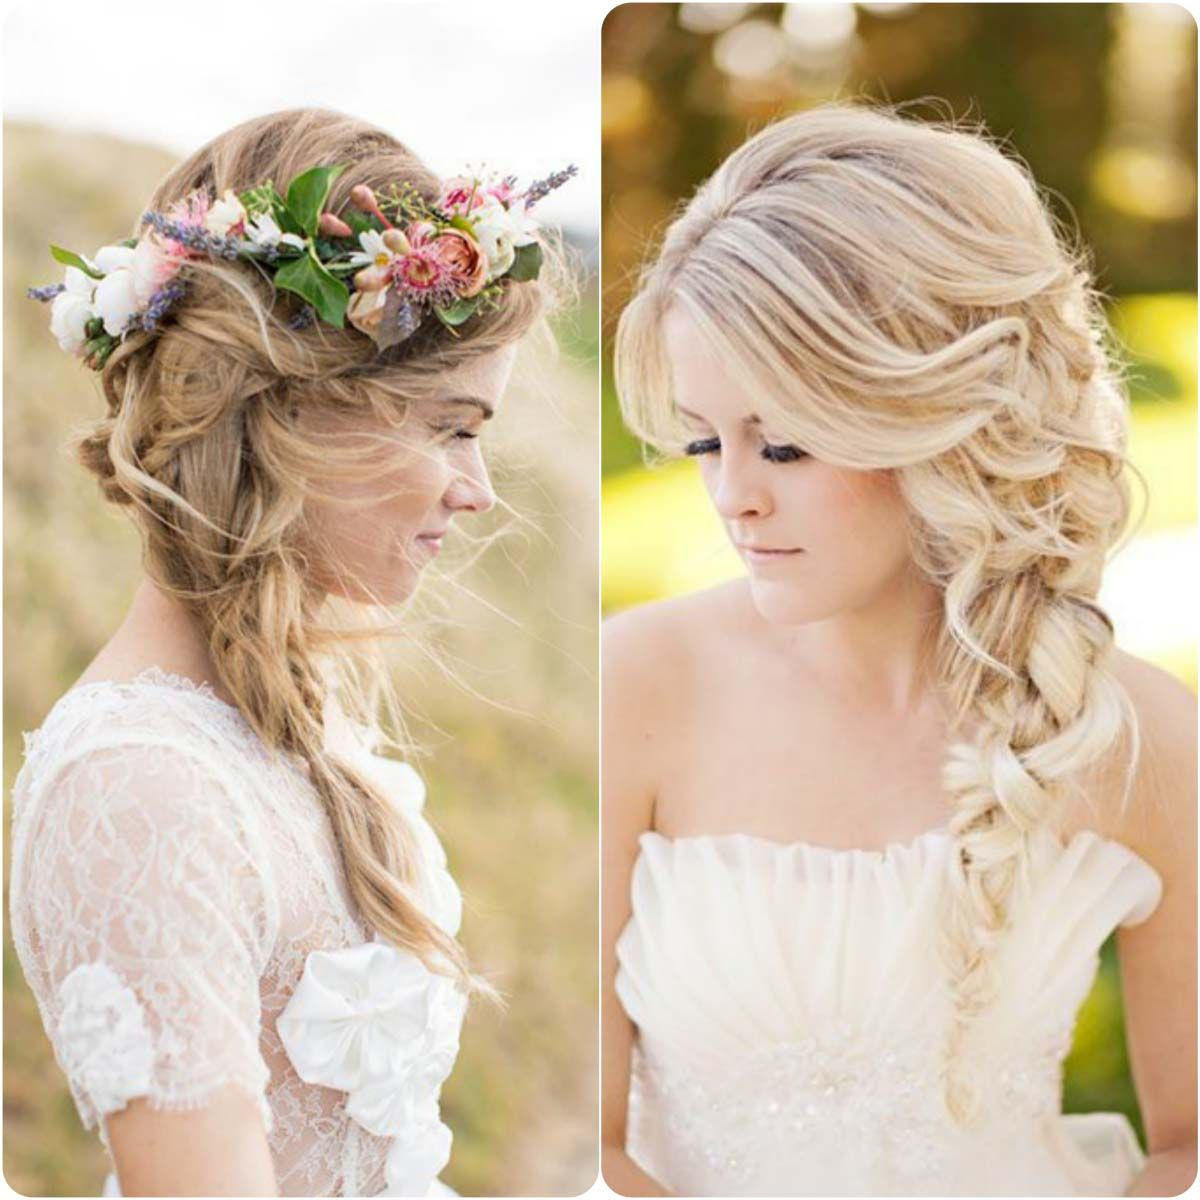 Braids Wedding Hairstyles: Pin By January Giles On *Wedding Hair* In 2019